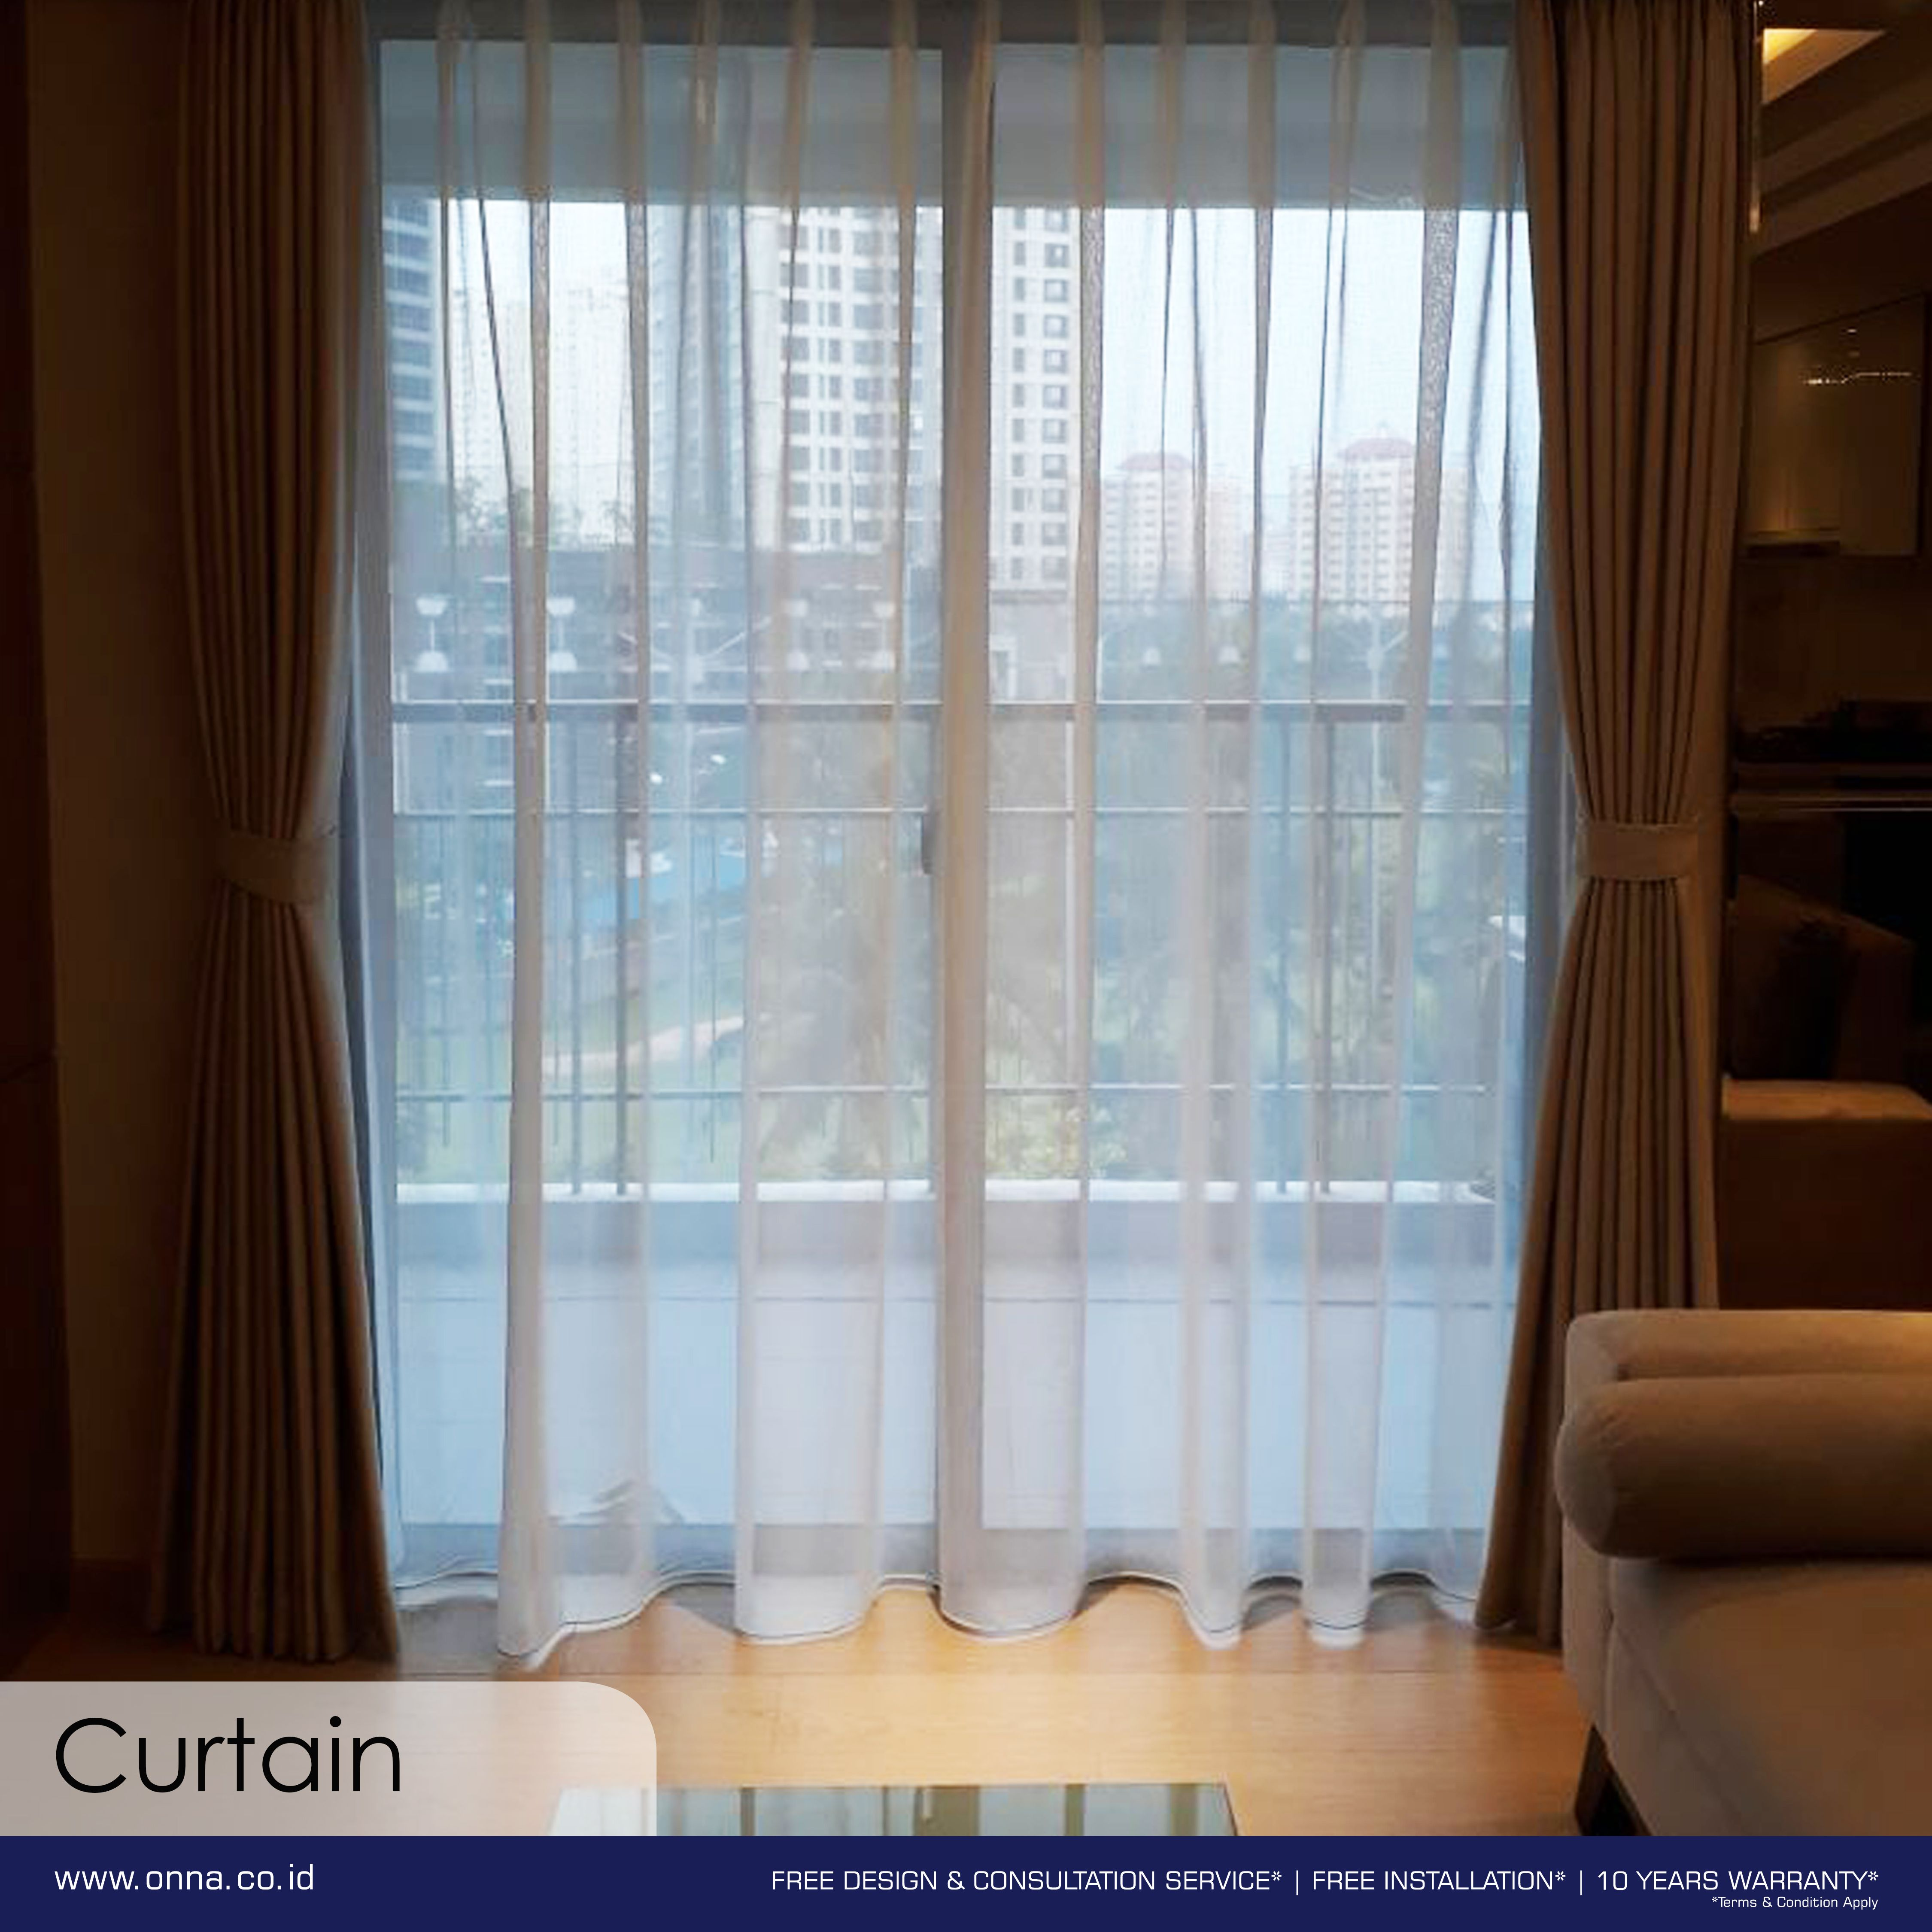 During The Summer Curtain Can Be More Than Just Decorative It